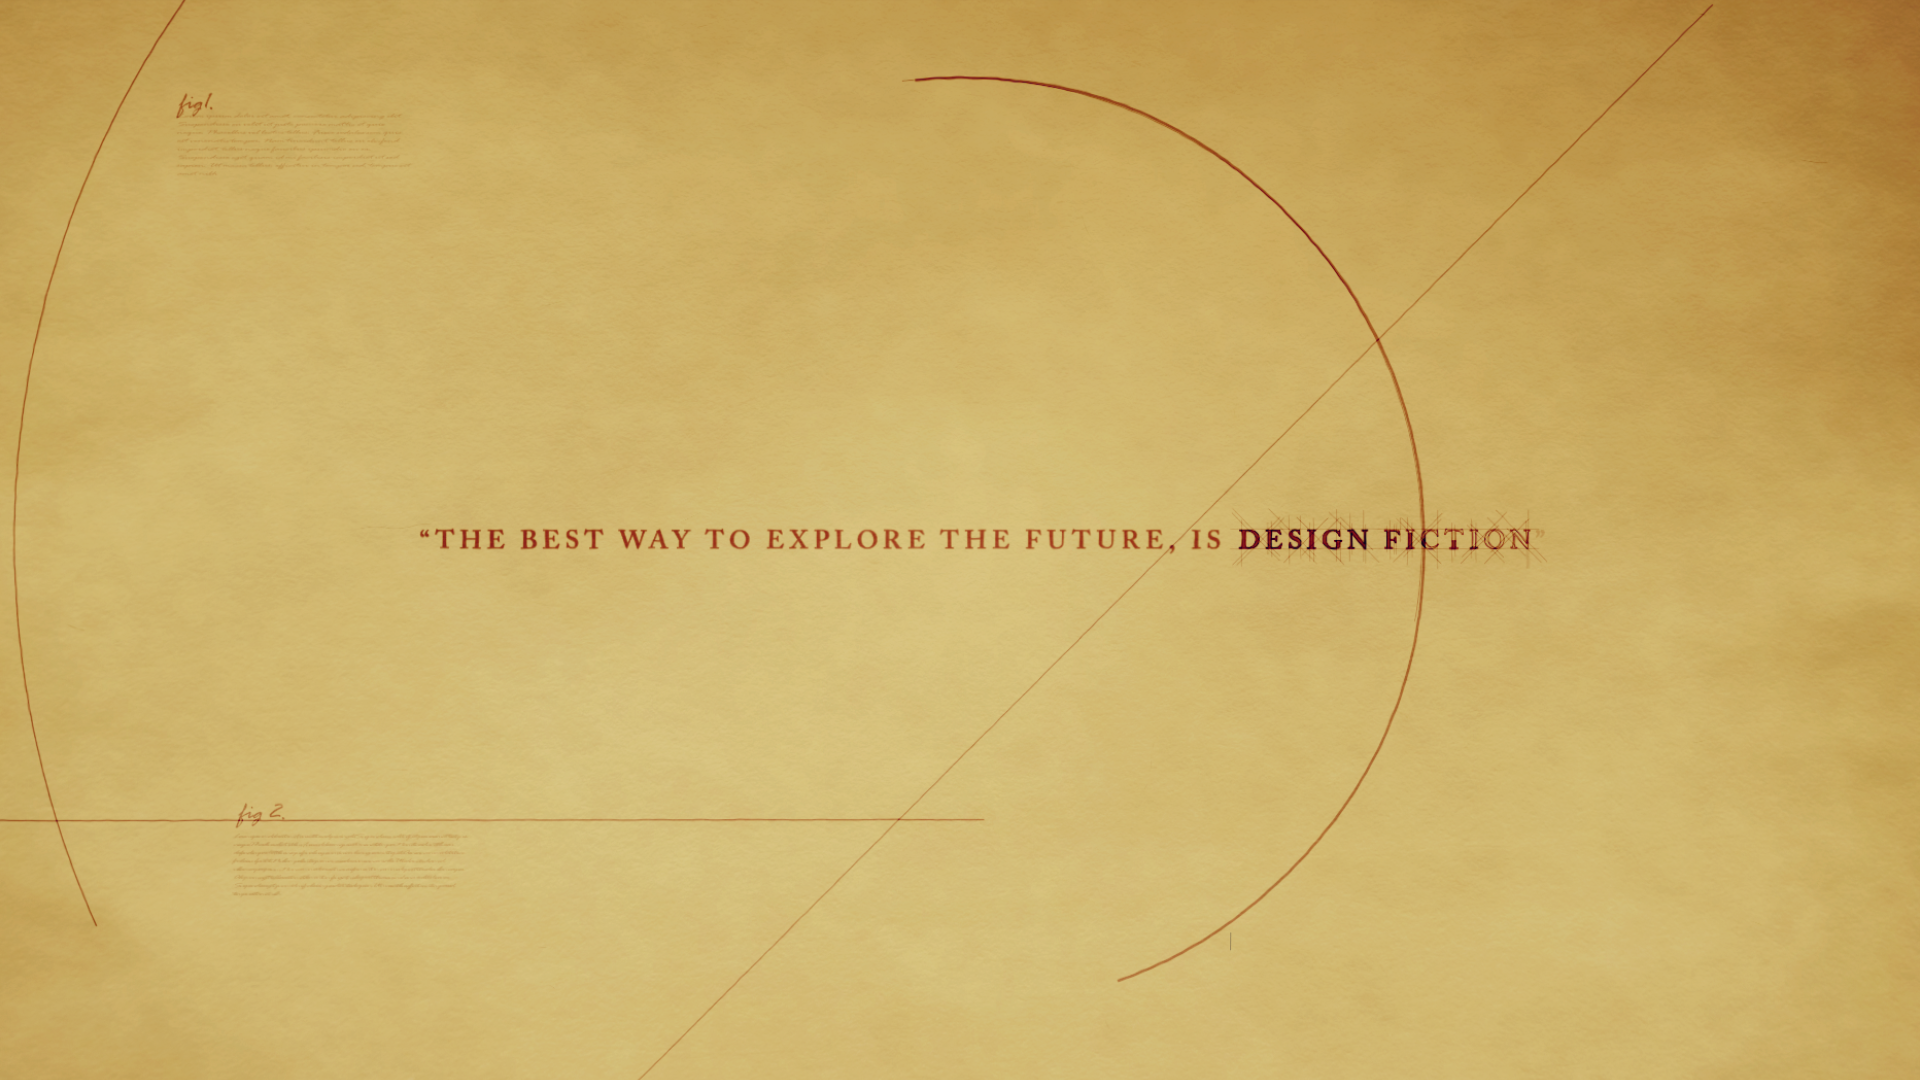 design fiction intro motion design